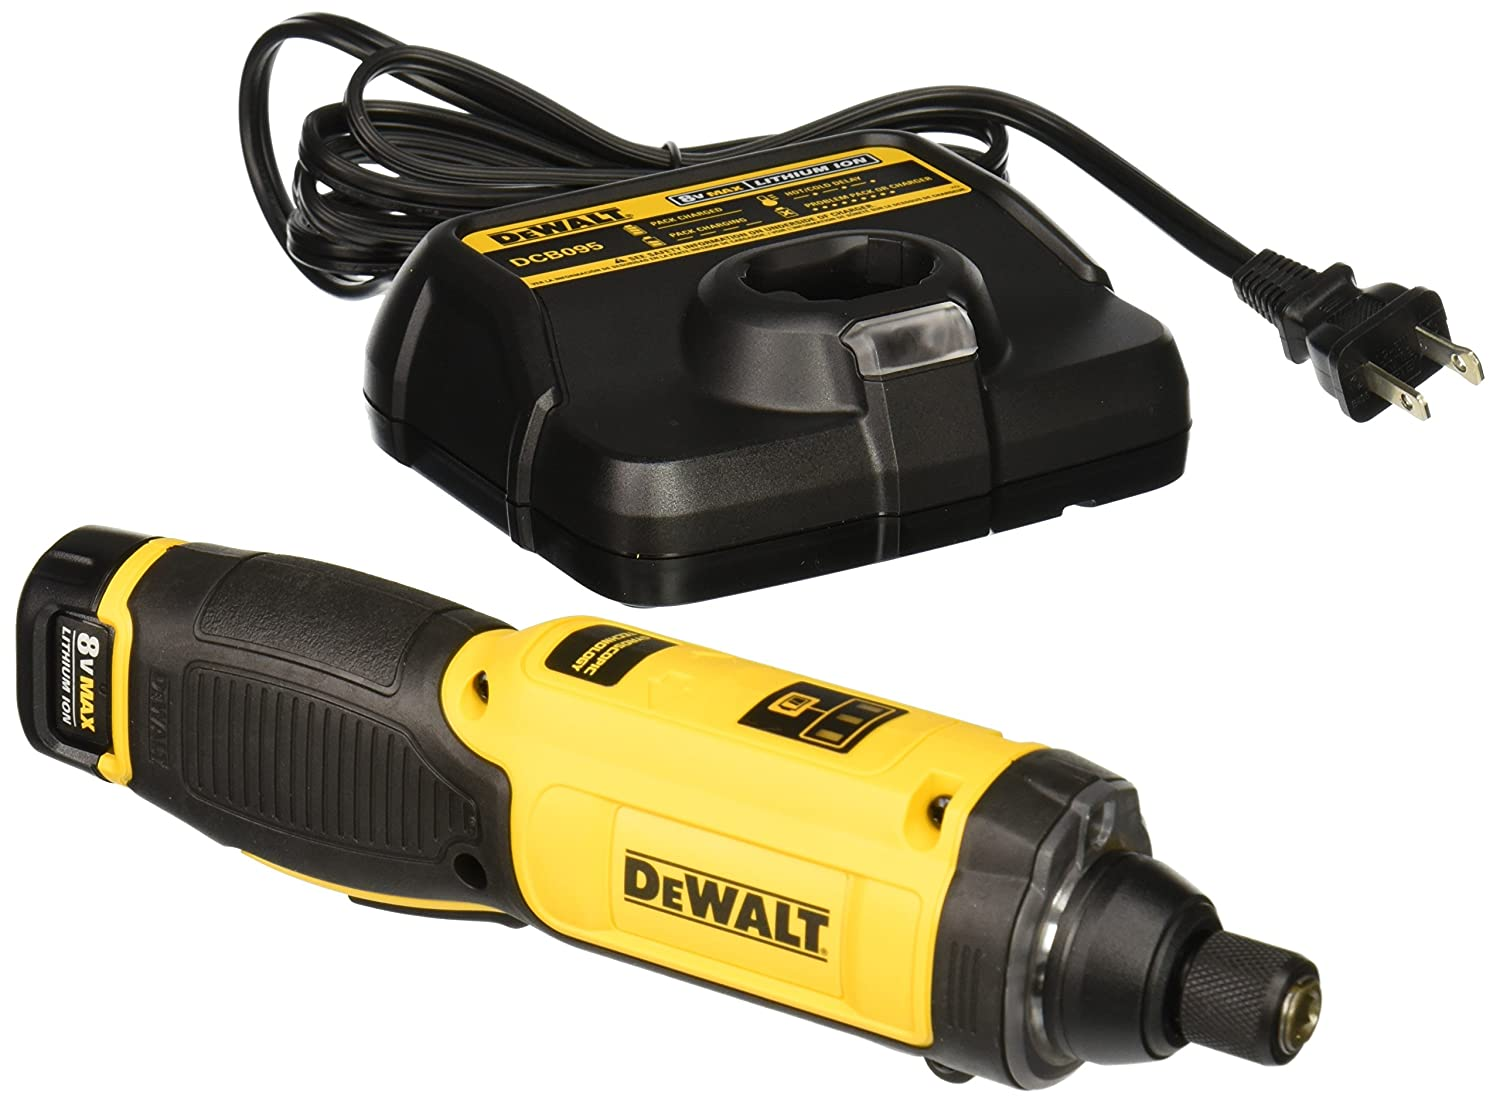 DEWALT DCF682N1 8V MAX Gyroscopic Inline Screwdriver